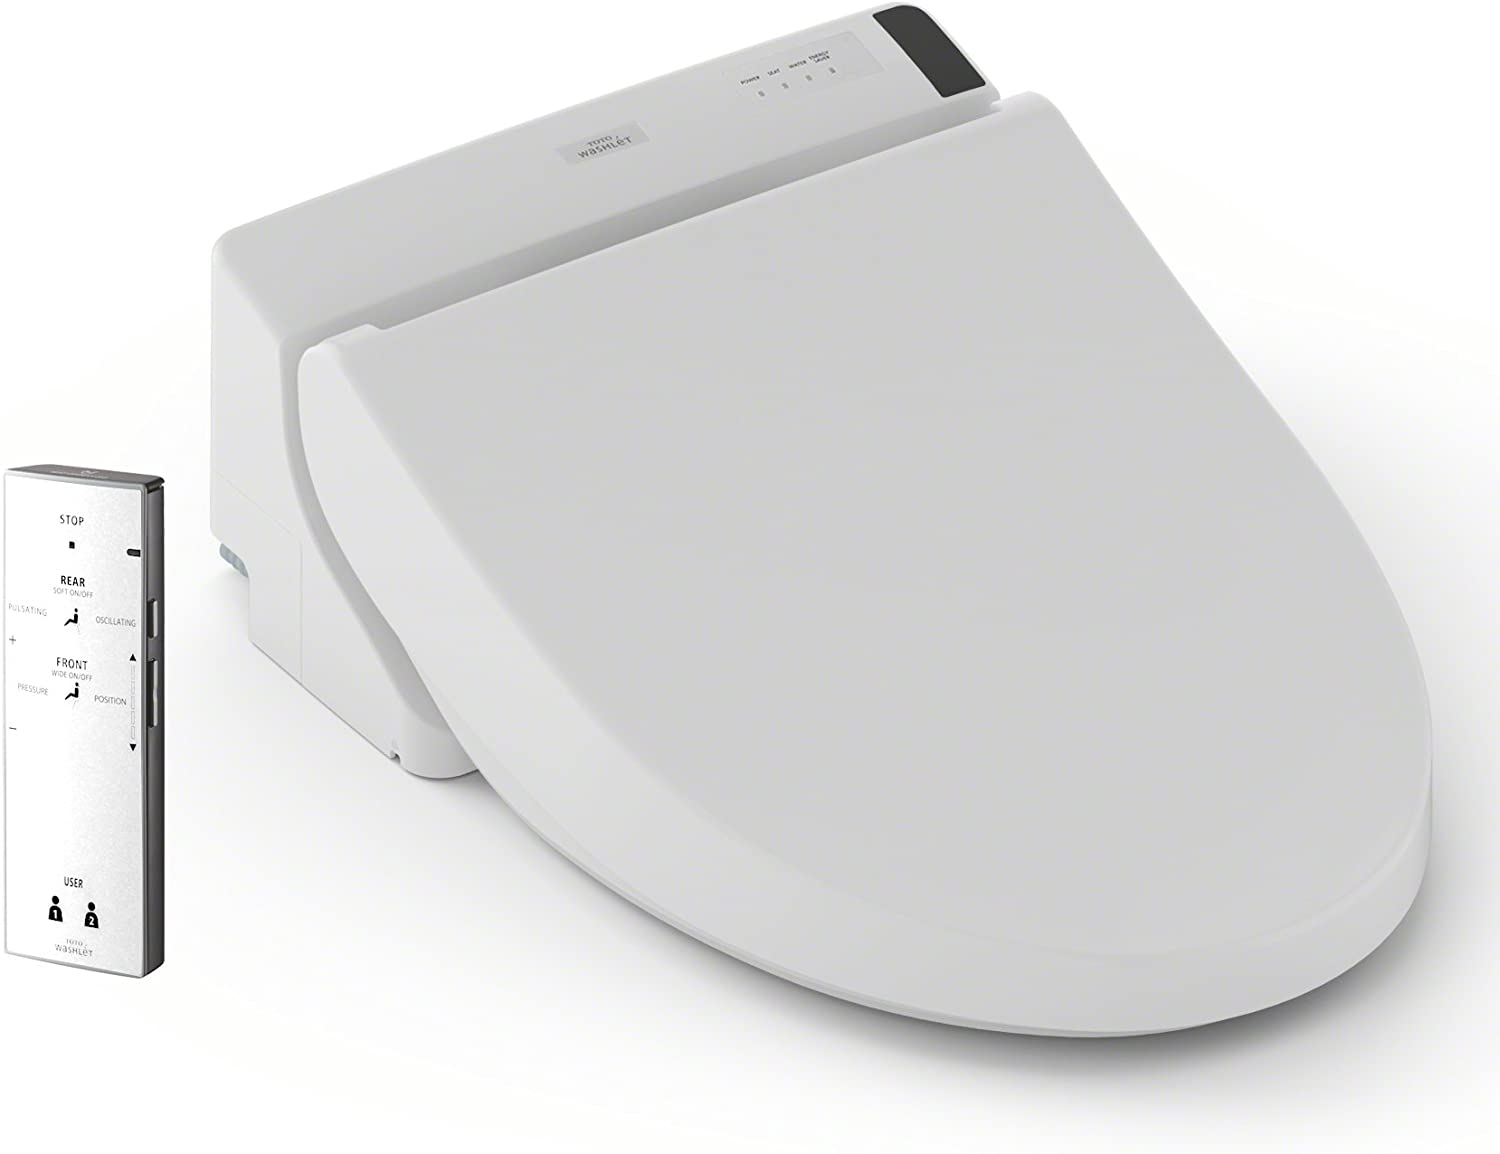 Toto Sw2024 01 A200 Washlet Electronic Bidet Tolet Seat With Softclose Lid Elongated Cotton White Amazon Com